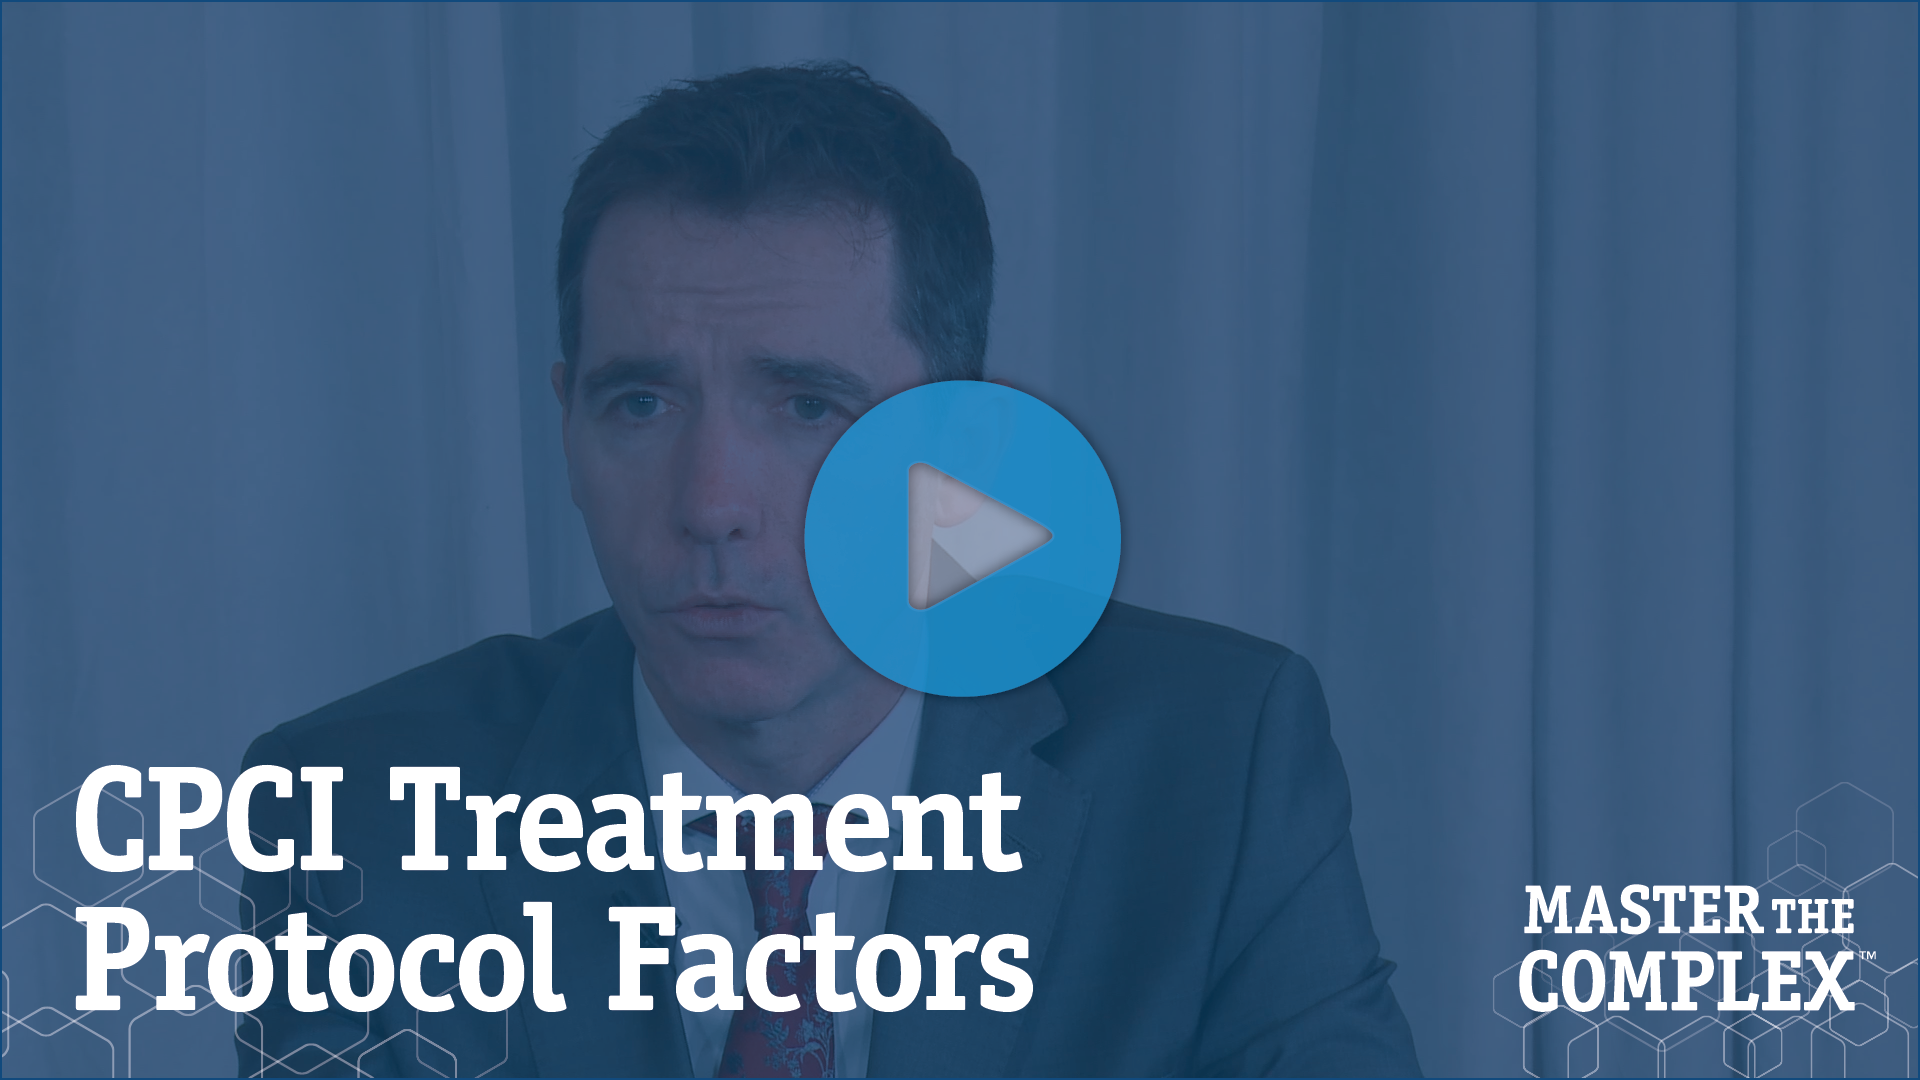 CPCI Treatment Protocol Factors: Treatment protocols for complex PCI cases look different today than they did 15 to 20 years ago. From your perspective, what contributing factors have impacted the treatment of these cases the most?